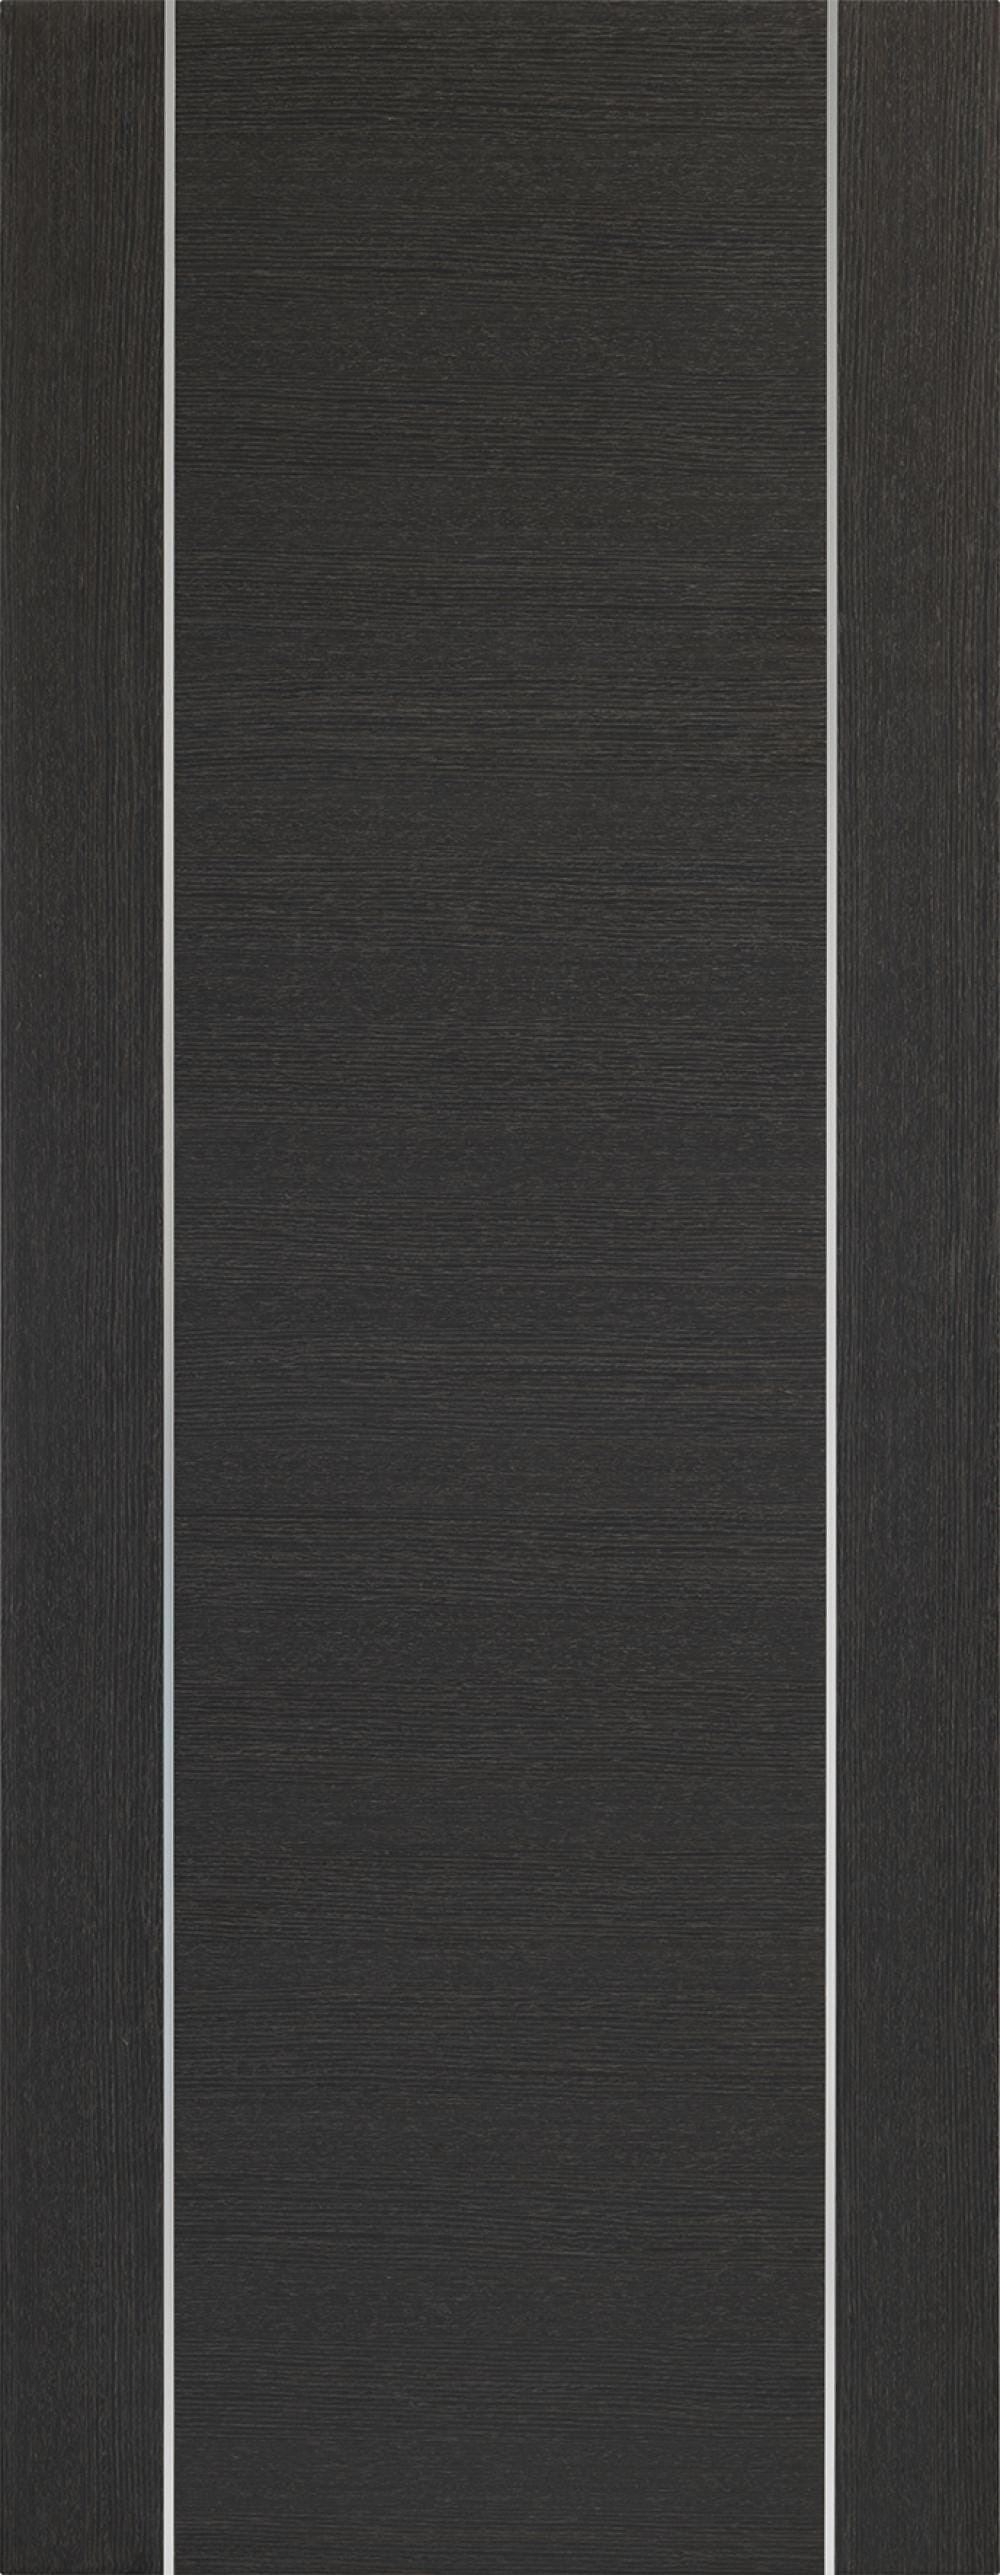 Forli Dark Grey - Prefinished Image